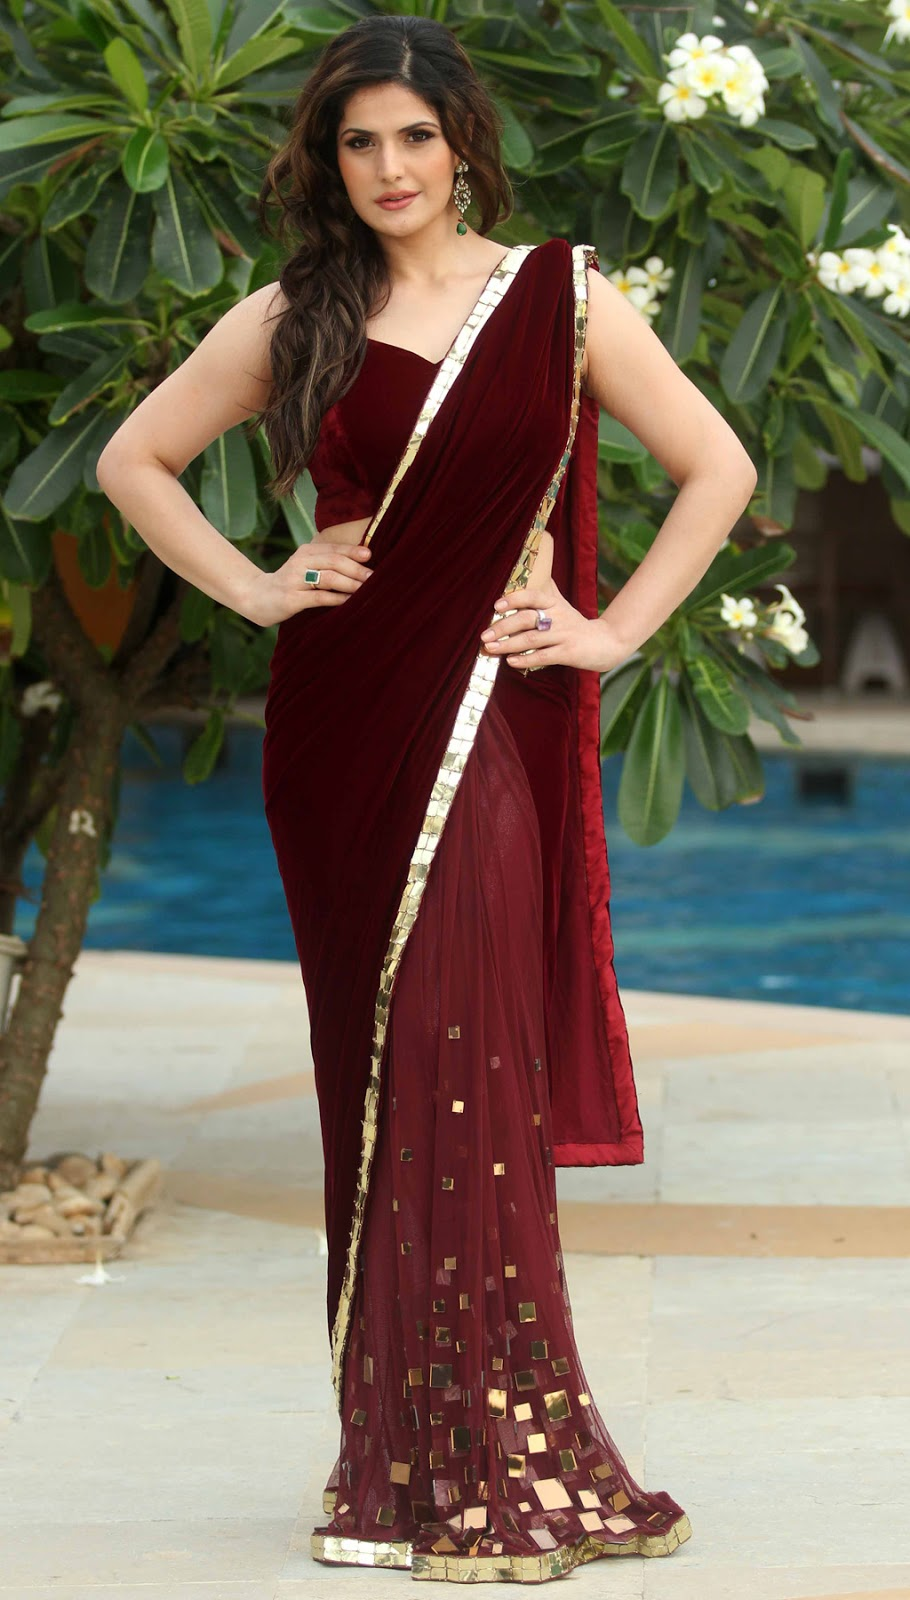 Zarine Khan Hot Photos In Red Saree At Indian Wedding -3837